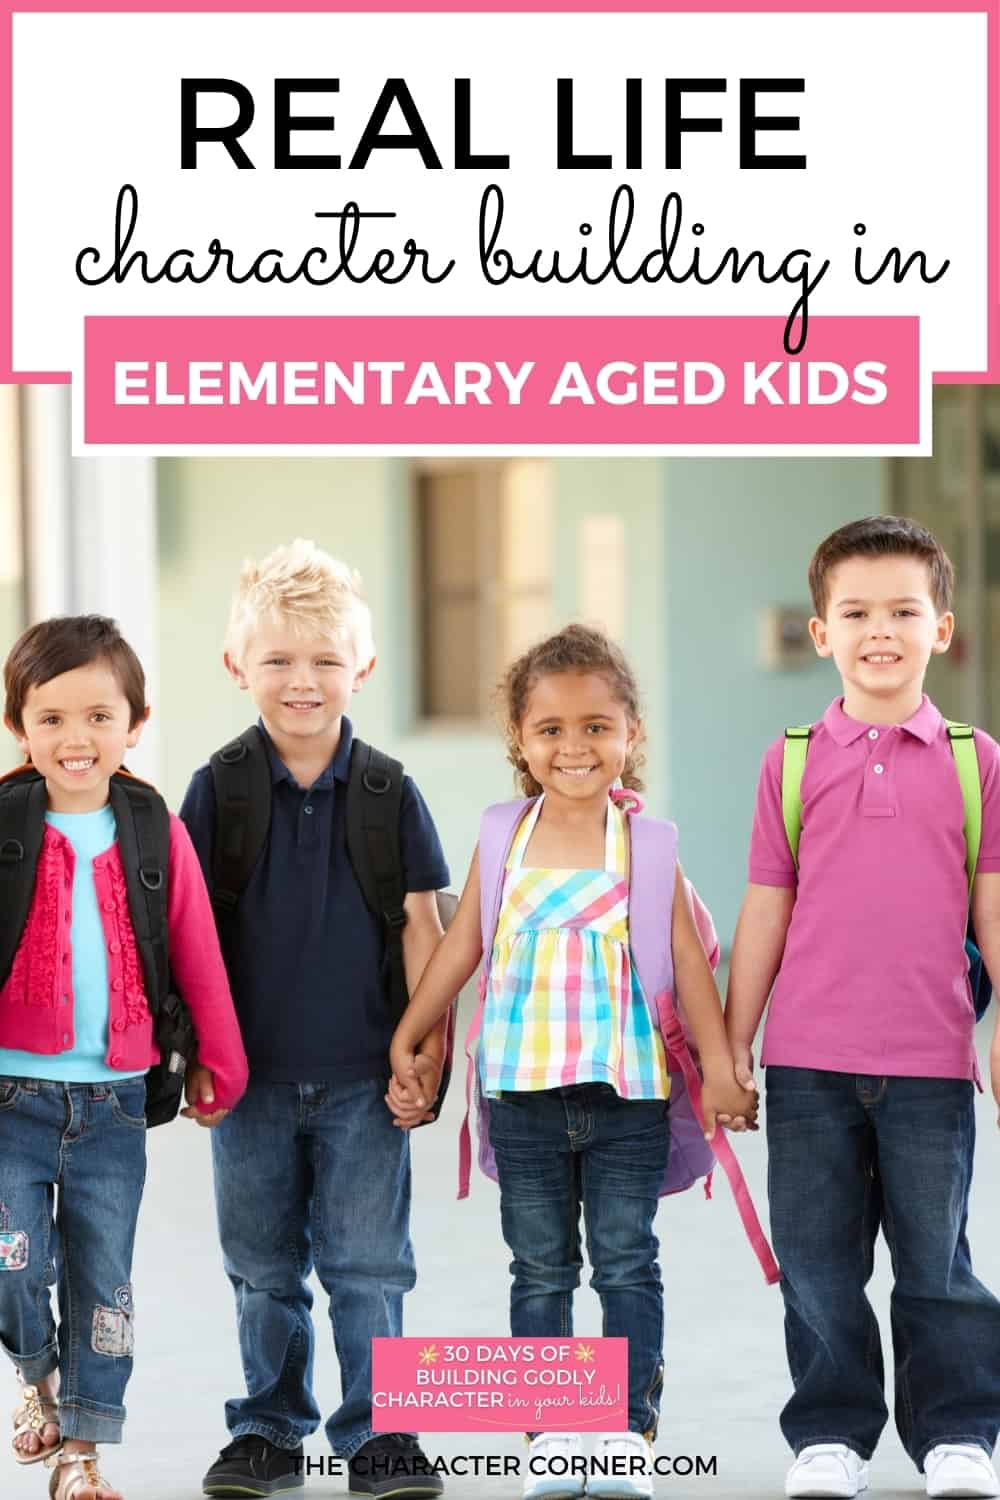 kids standing holding hands and being kind text on image reads Real Life Character Building in Elementary Aged Kids